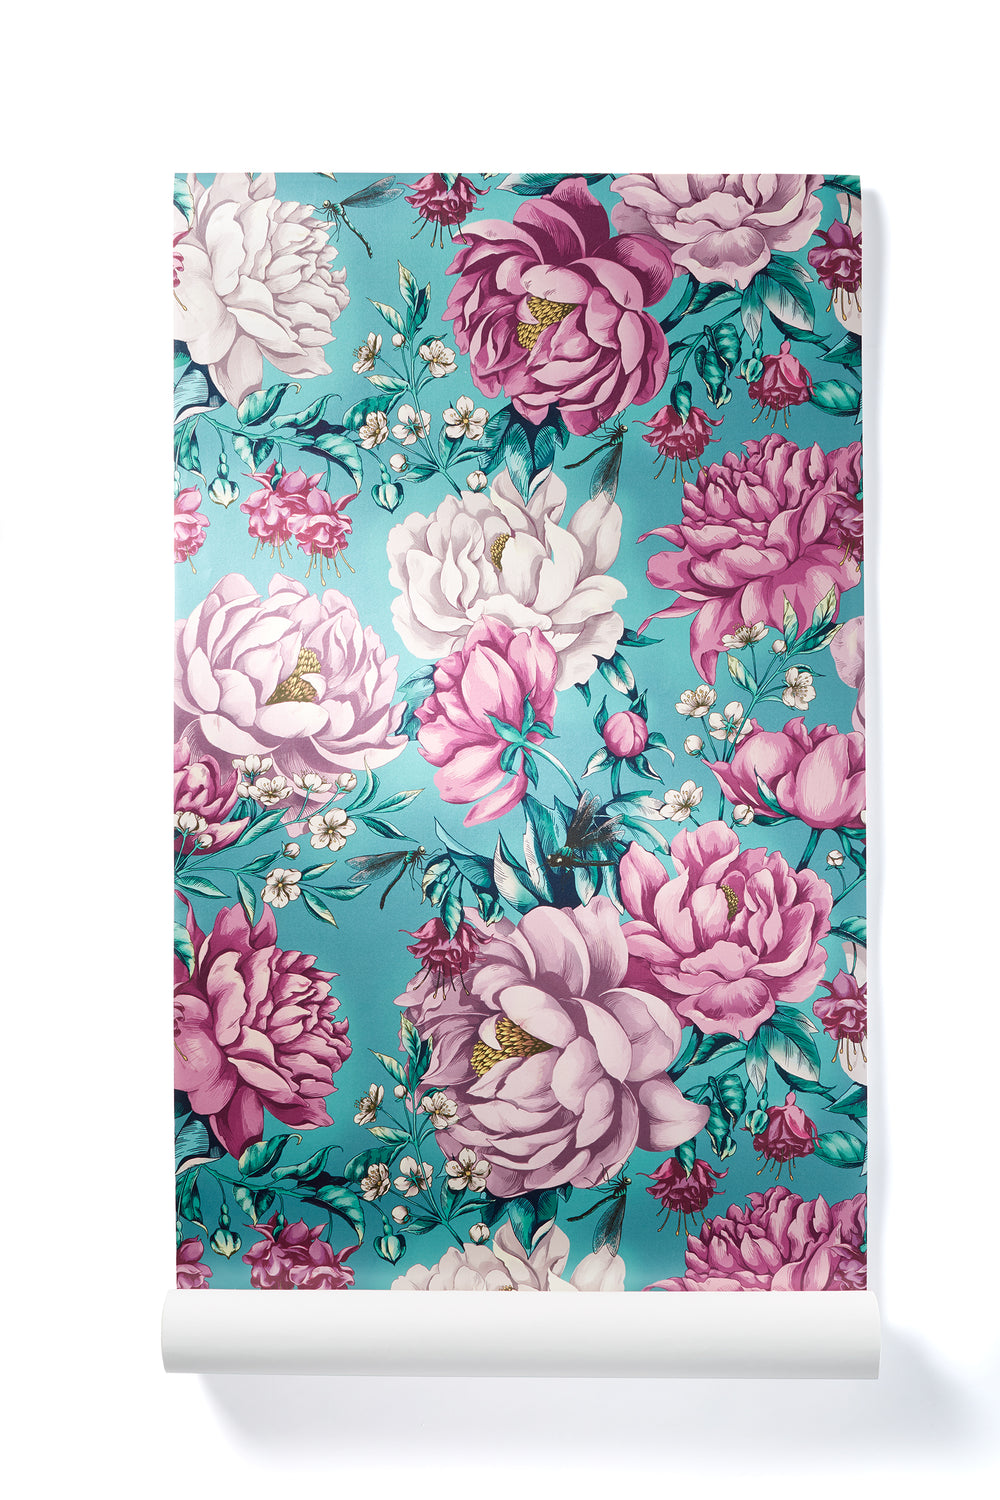 Magical Awakening - Oversized Teal & Pink Peony Floral Wallpaper, Shimmer Finish Shimmer